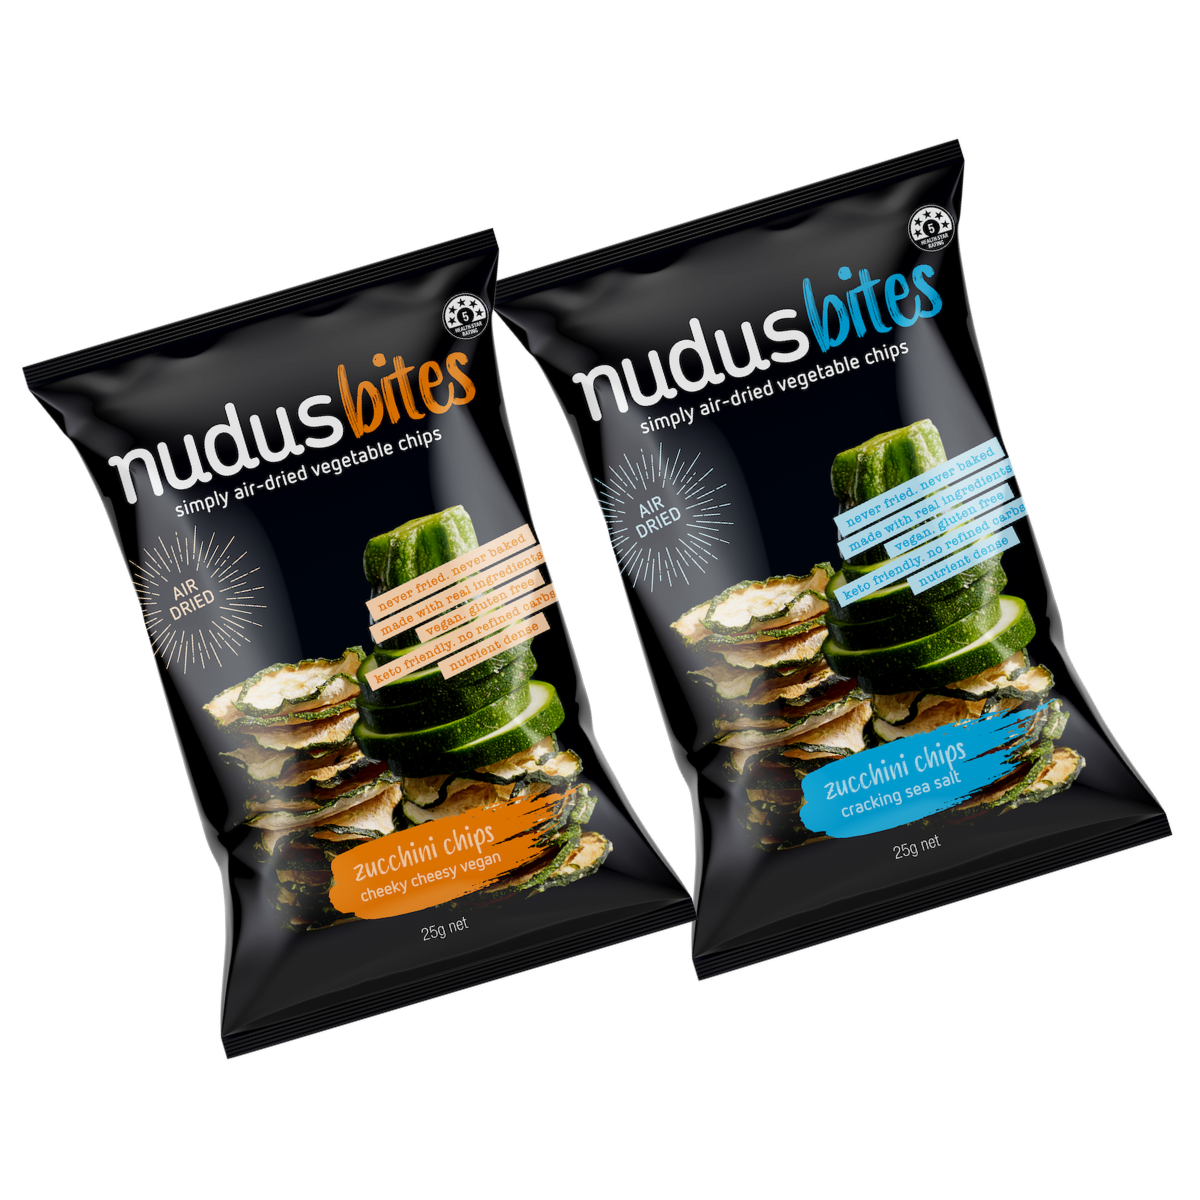 Zucchini Chips Mixed Box - 12 Packs ($3.20 / 25g Pack)